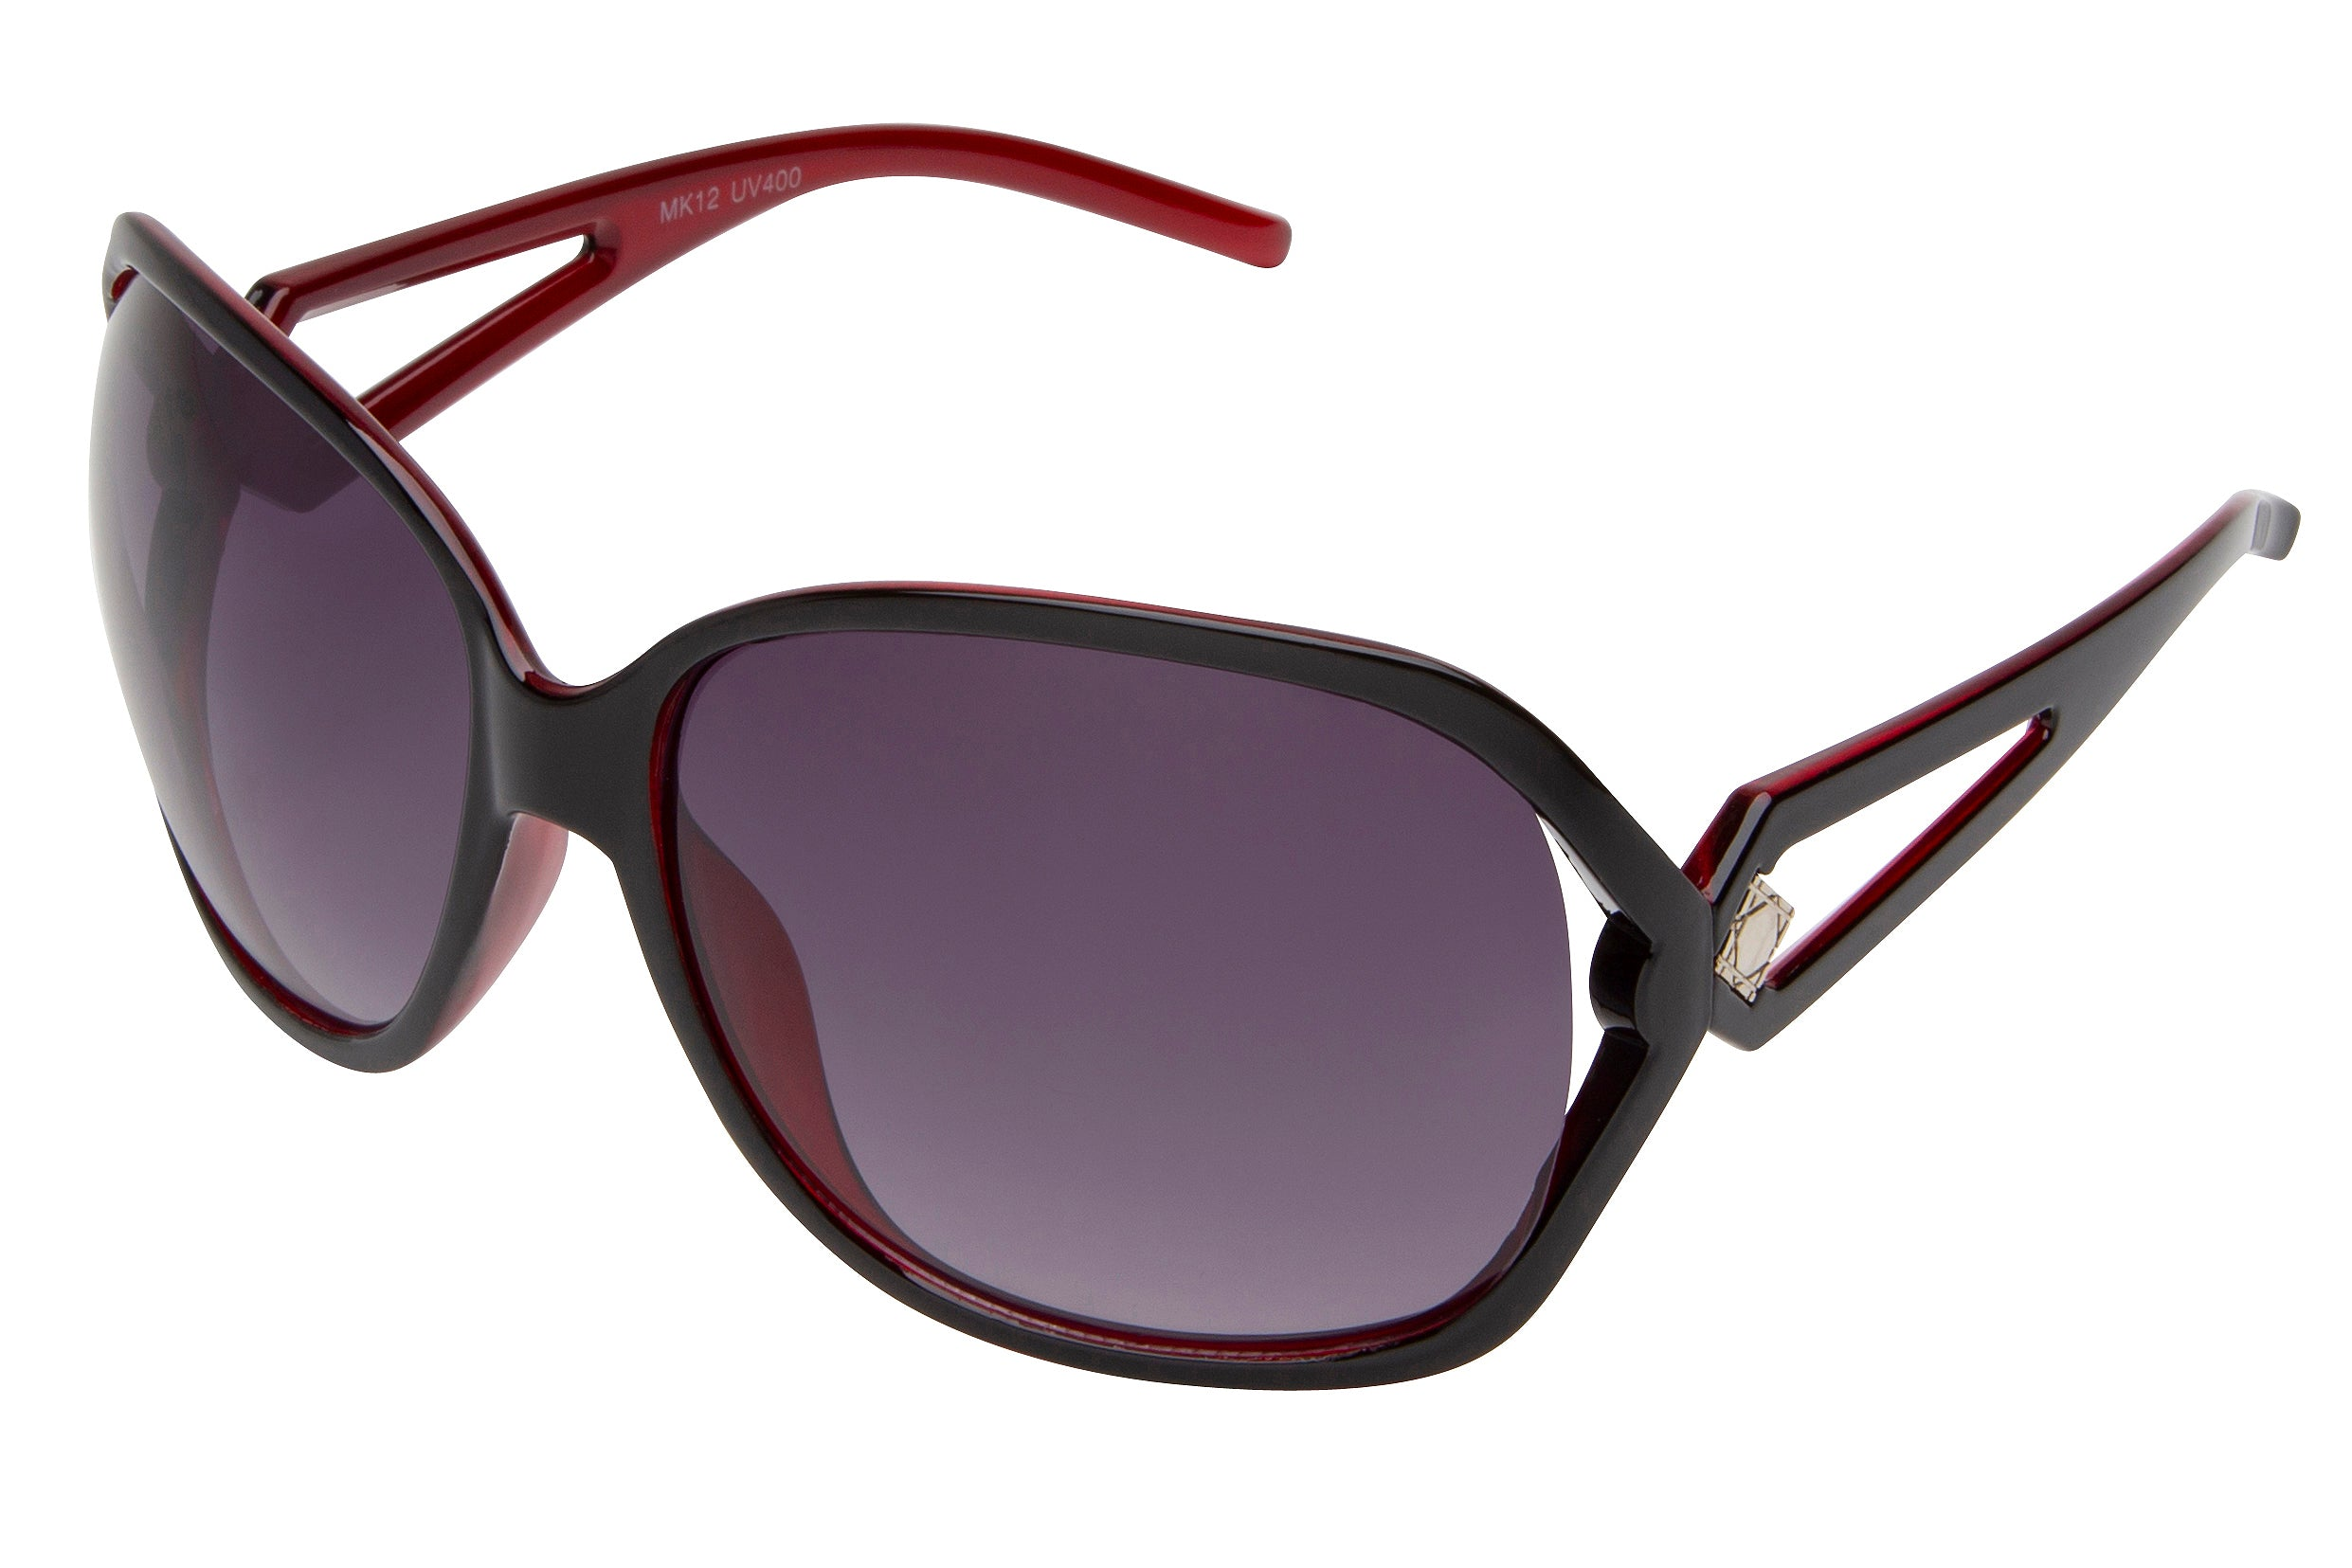 MK12 - Women's Fashion Sunglasses